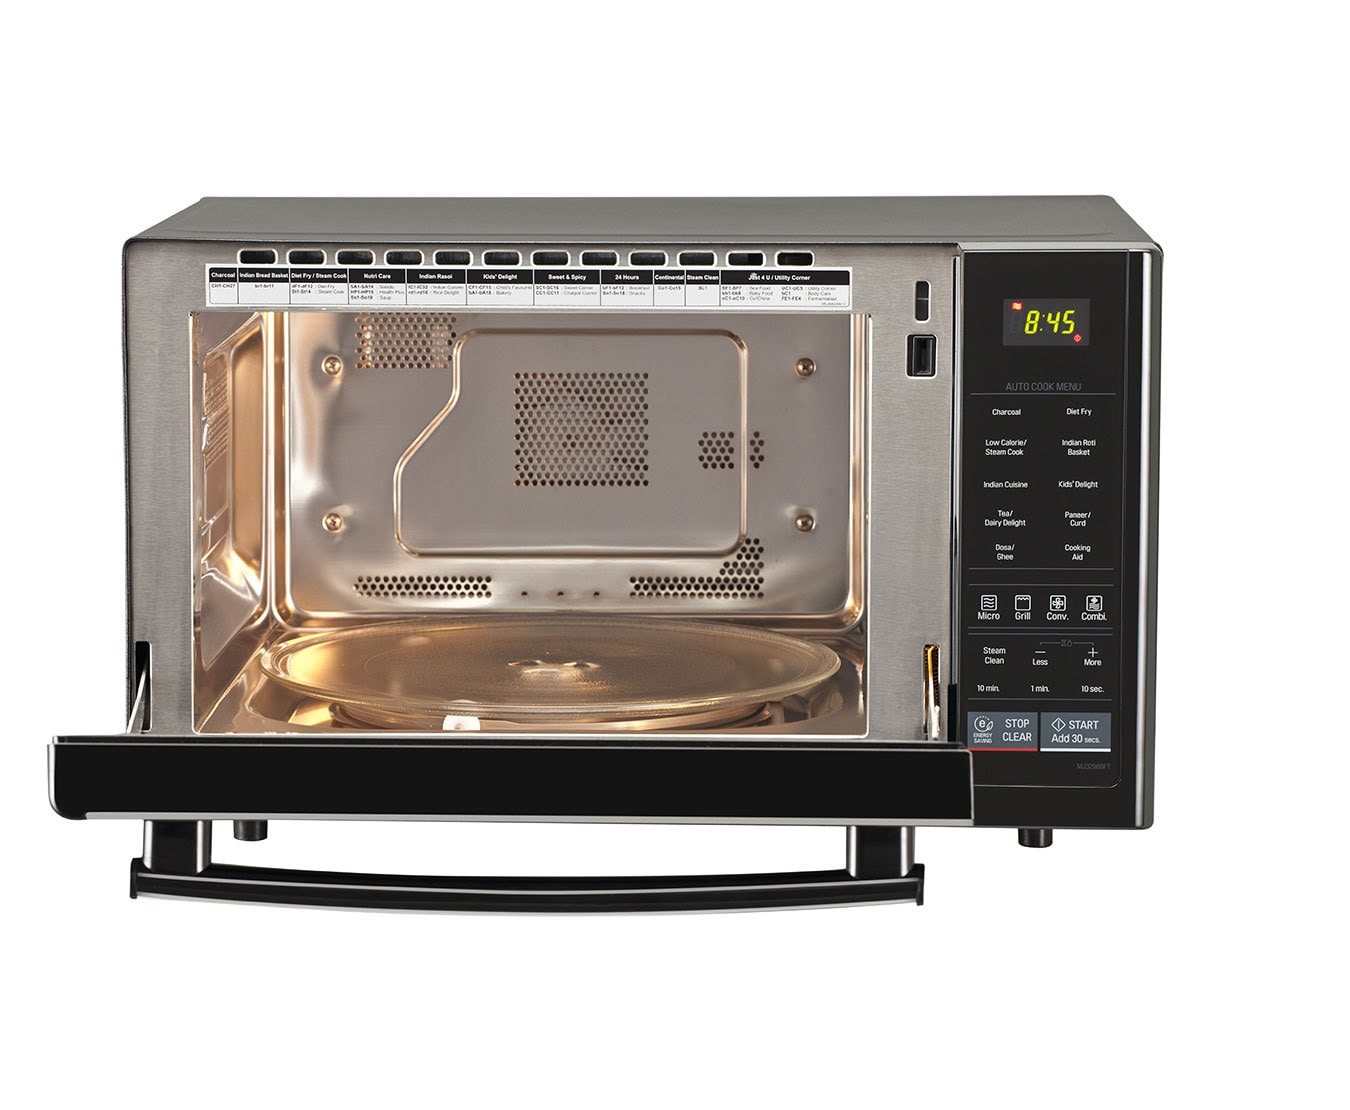 Microwave Oven New Technology Bestmicrowave